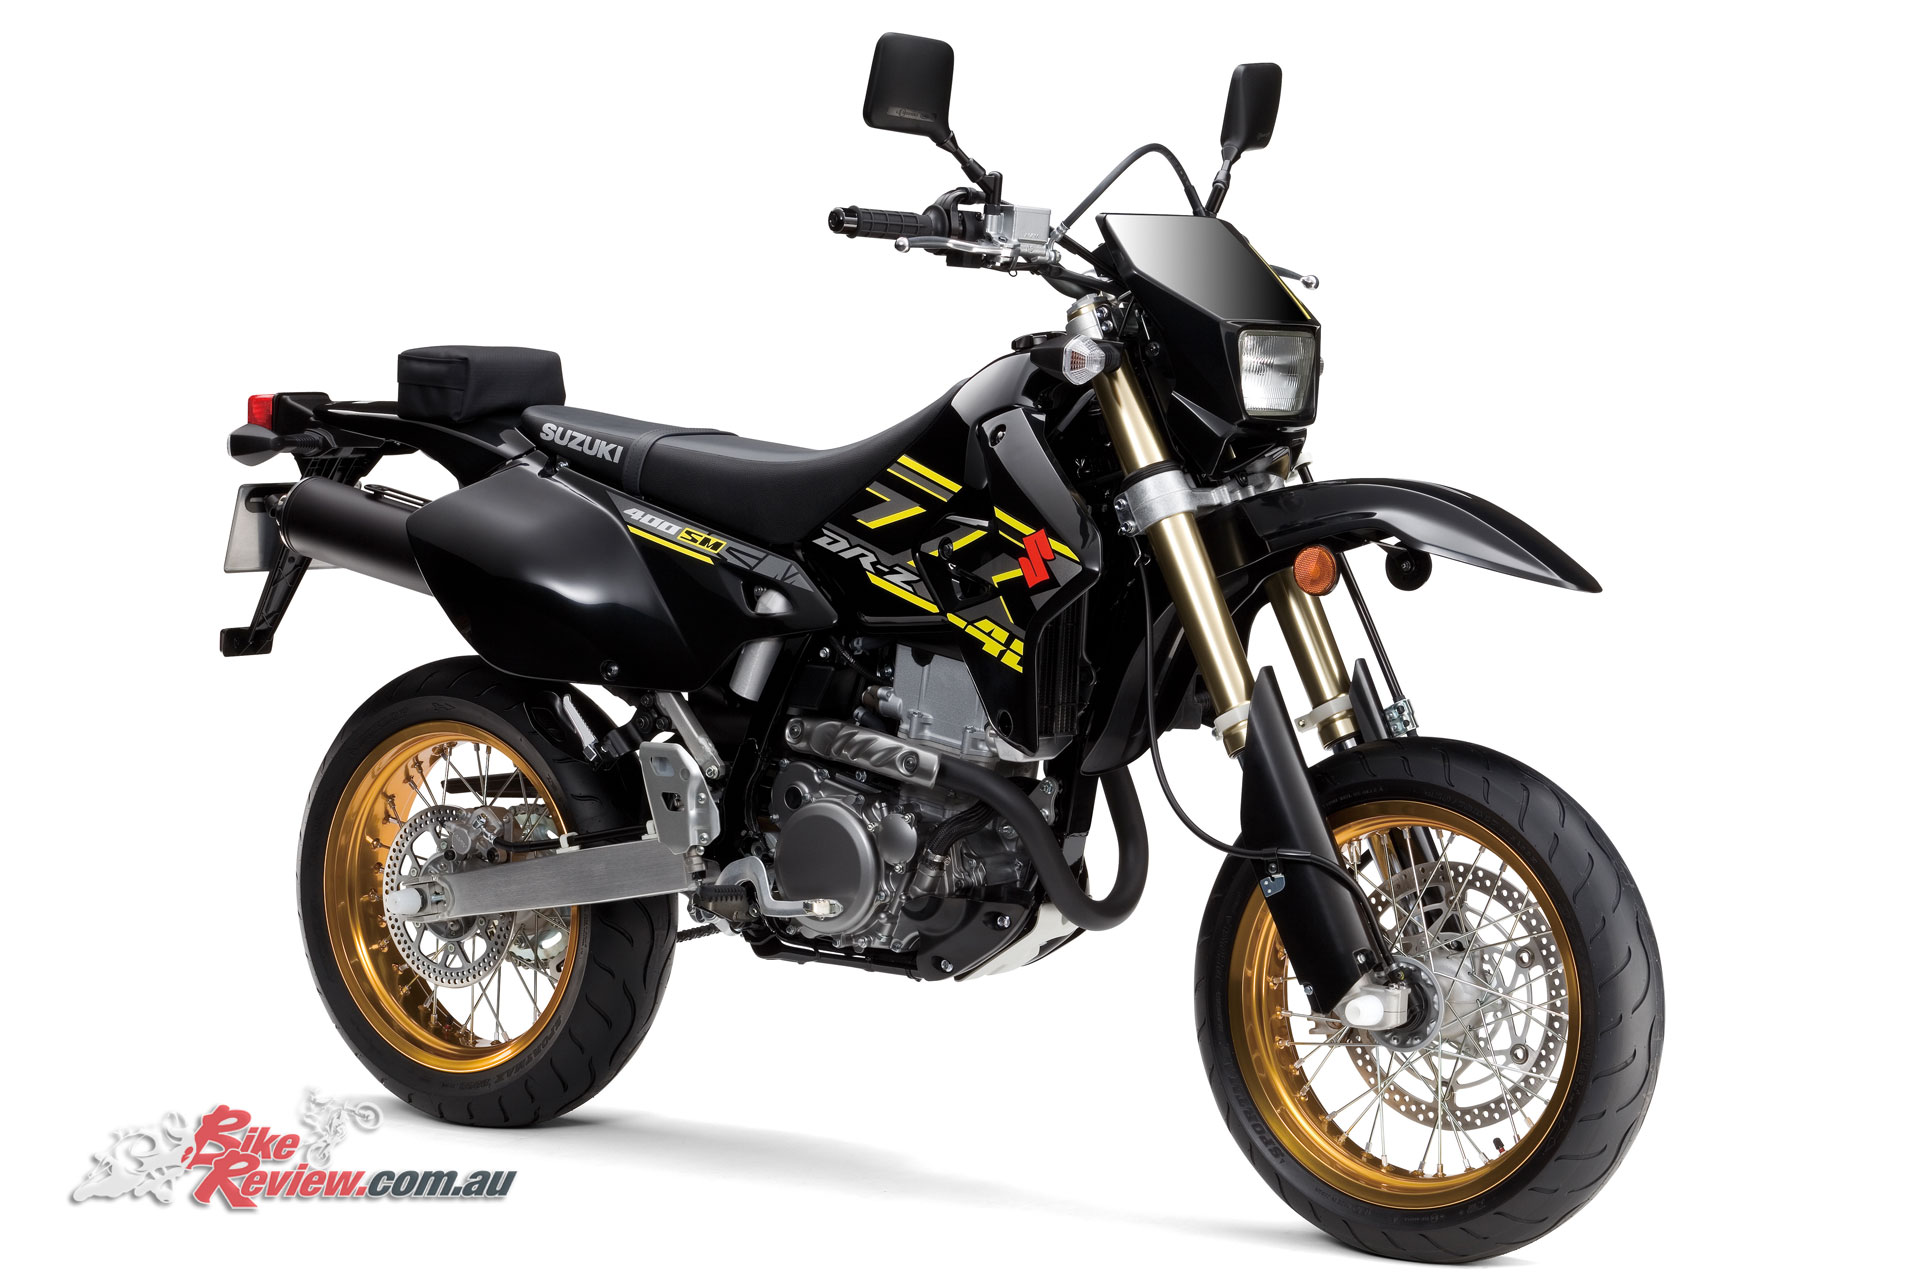 The 2018 DR-Z400SM arrives with new colour - Bike Review